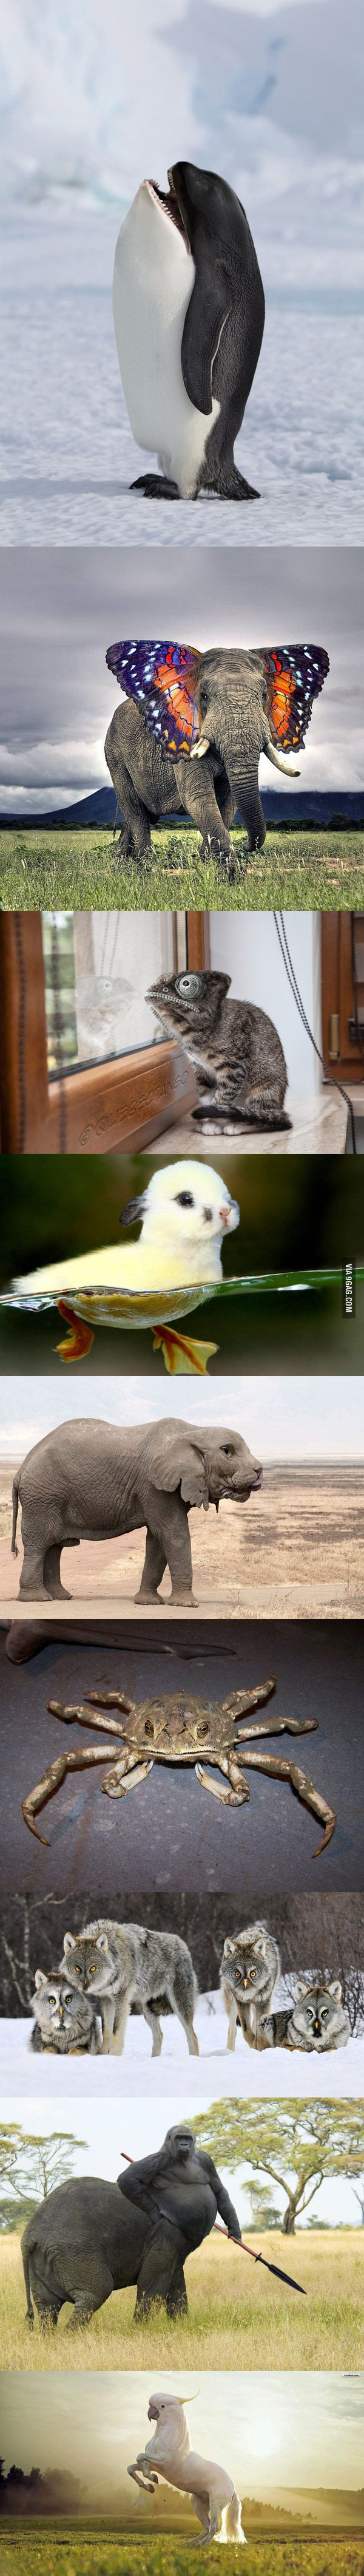 Majestic animal photoshopping... my favorite is the last one :)))))